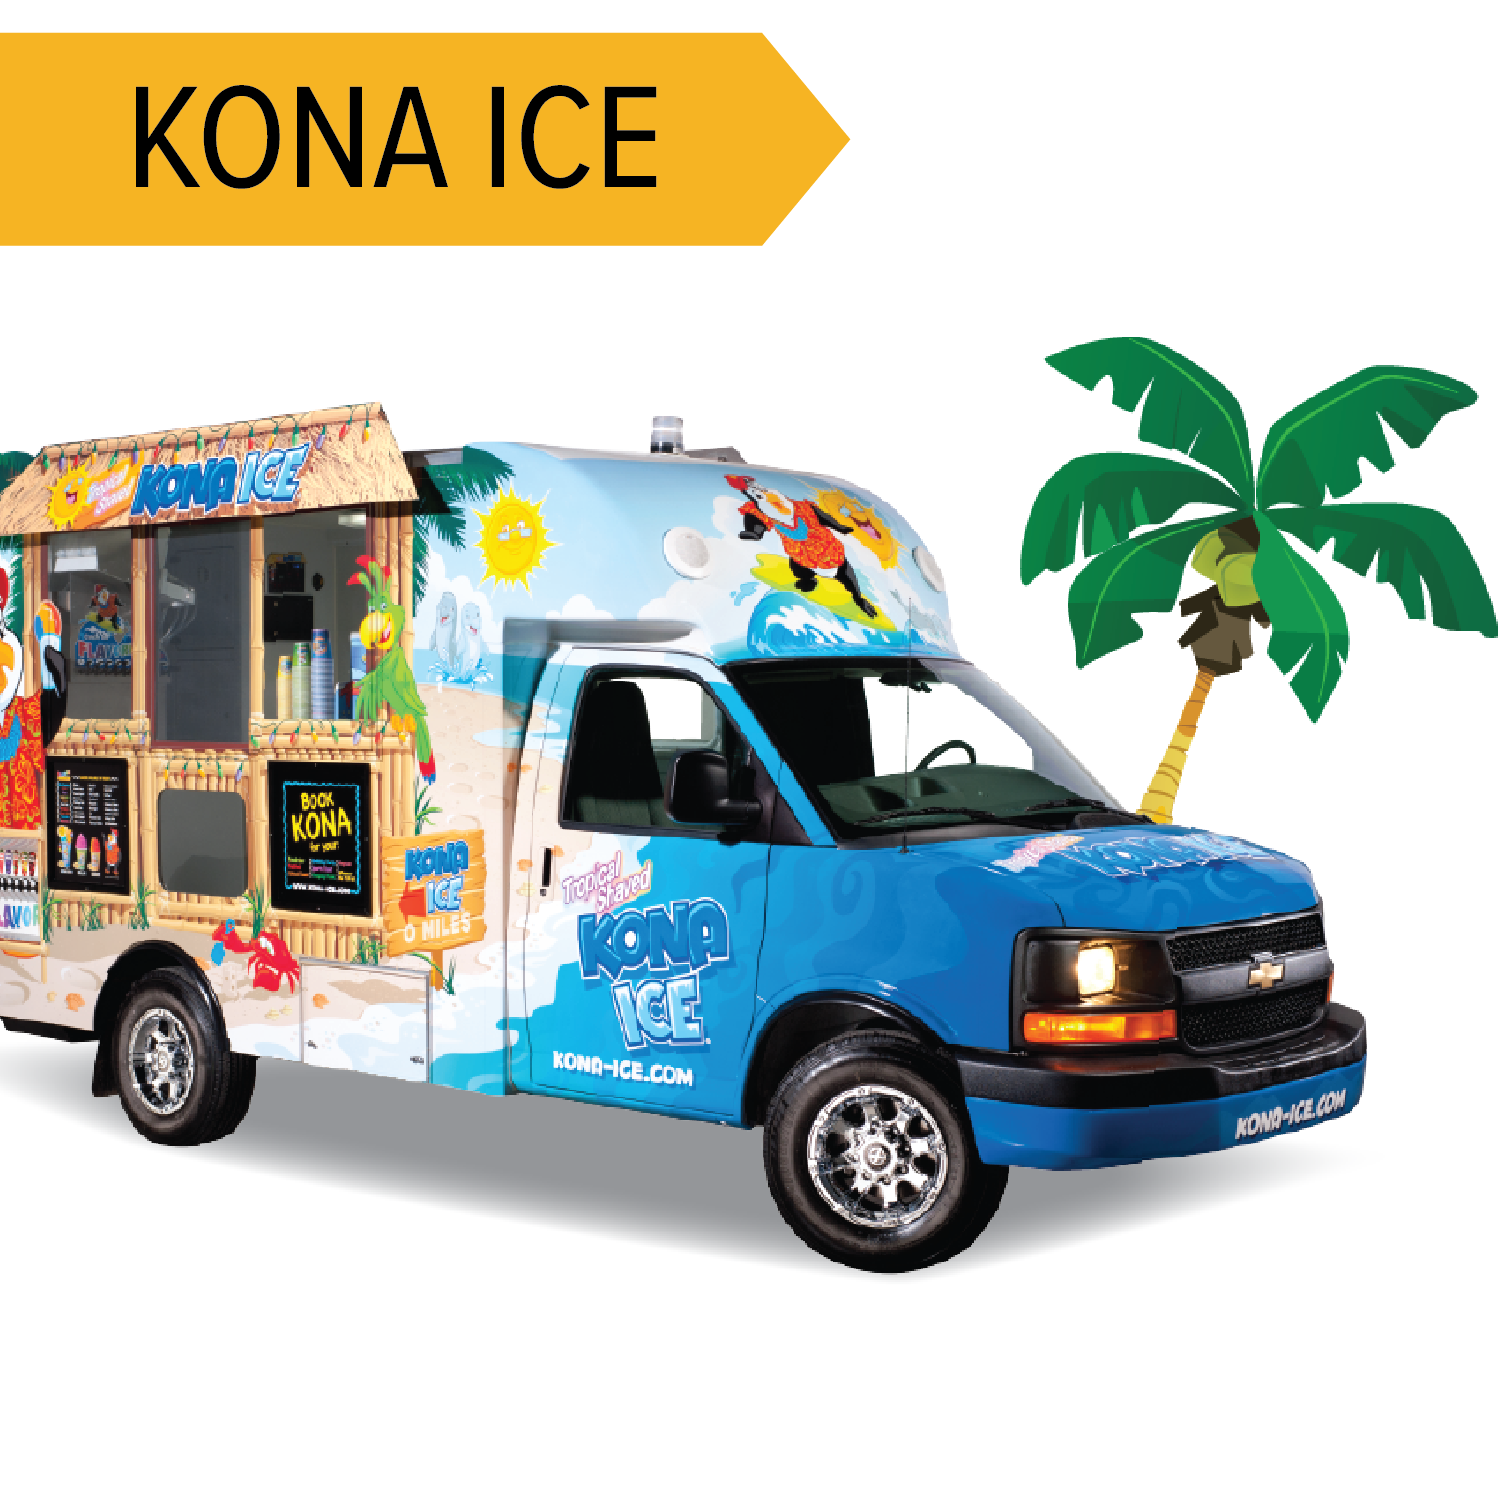 Kona Ice   Shaved Ice in a rainbow of flavors! A little sweet treat to refresh your palette!